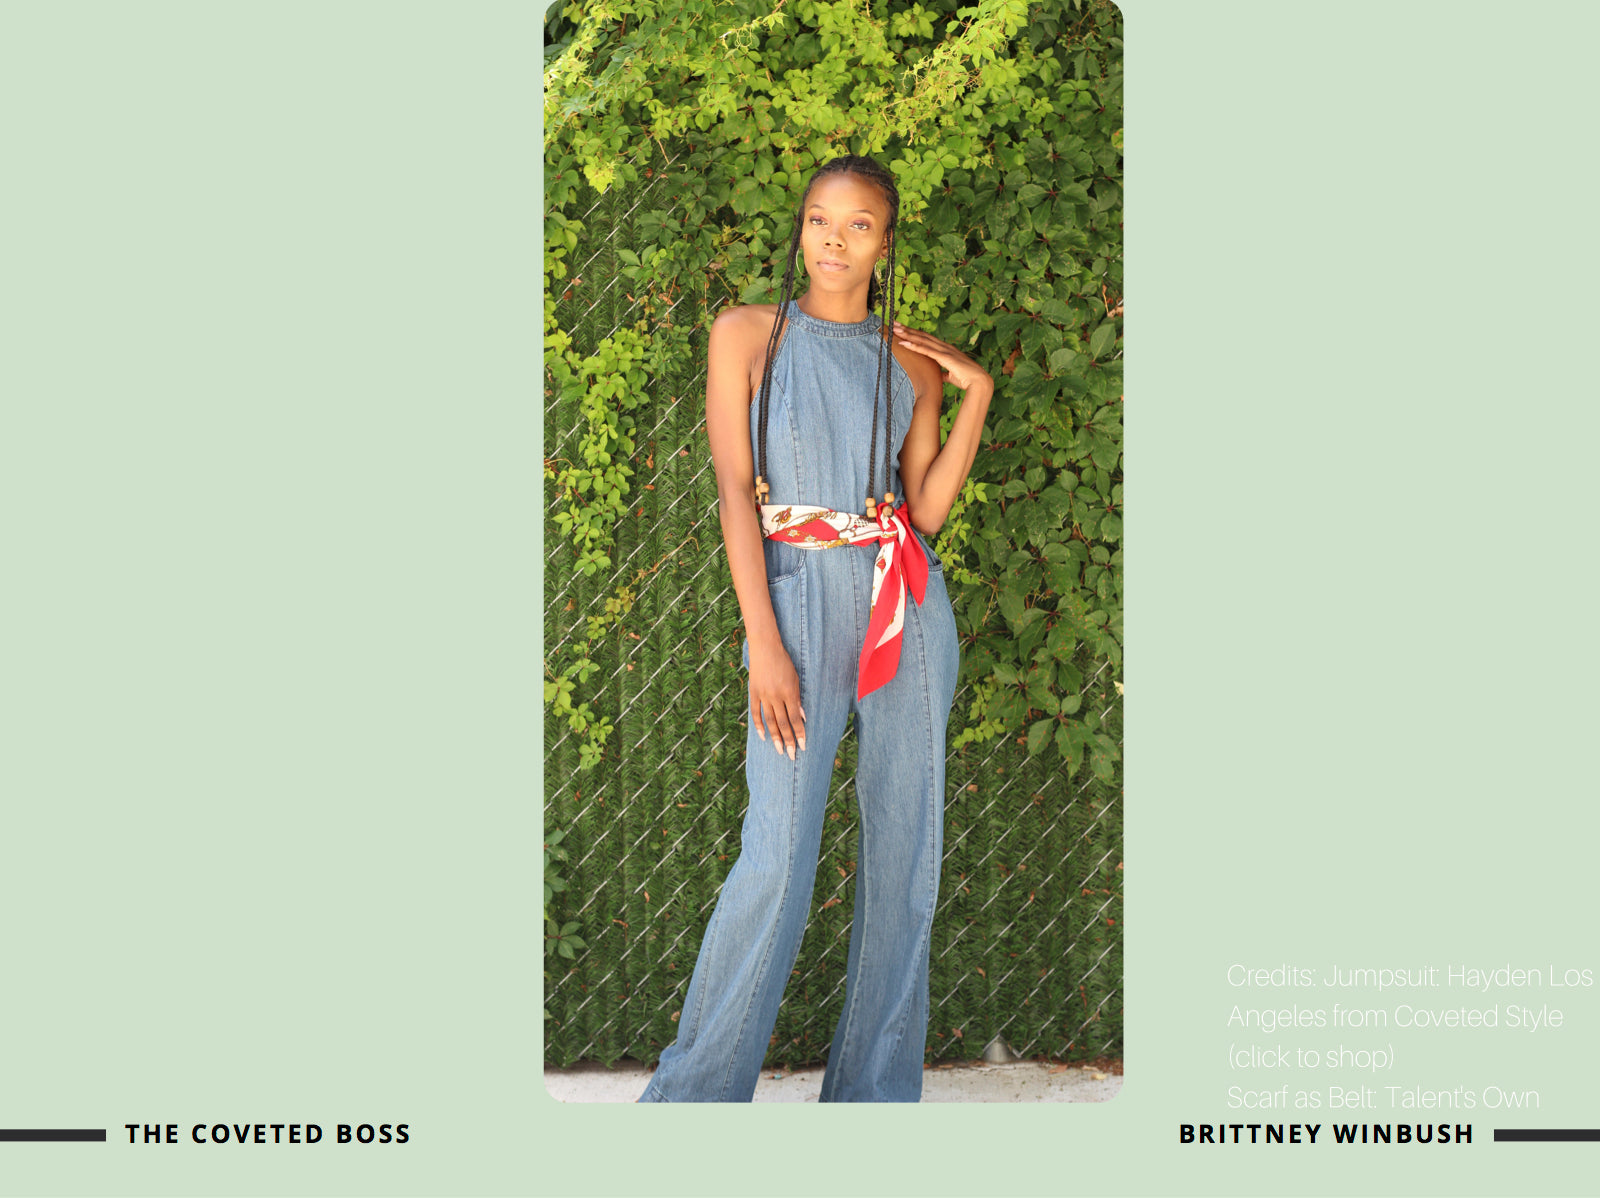 coveted style brittney winbush of alexandra winbush wearing denim jumpsuit